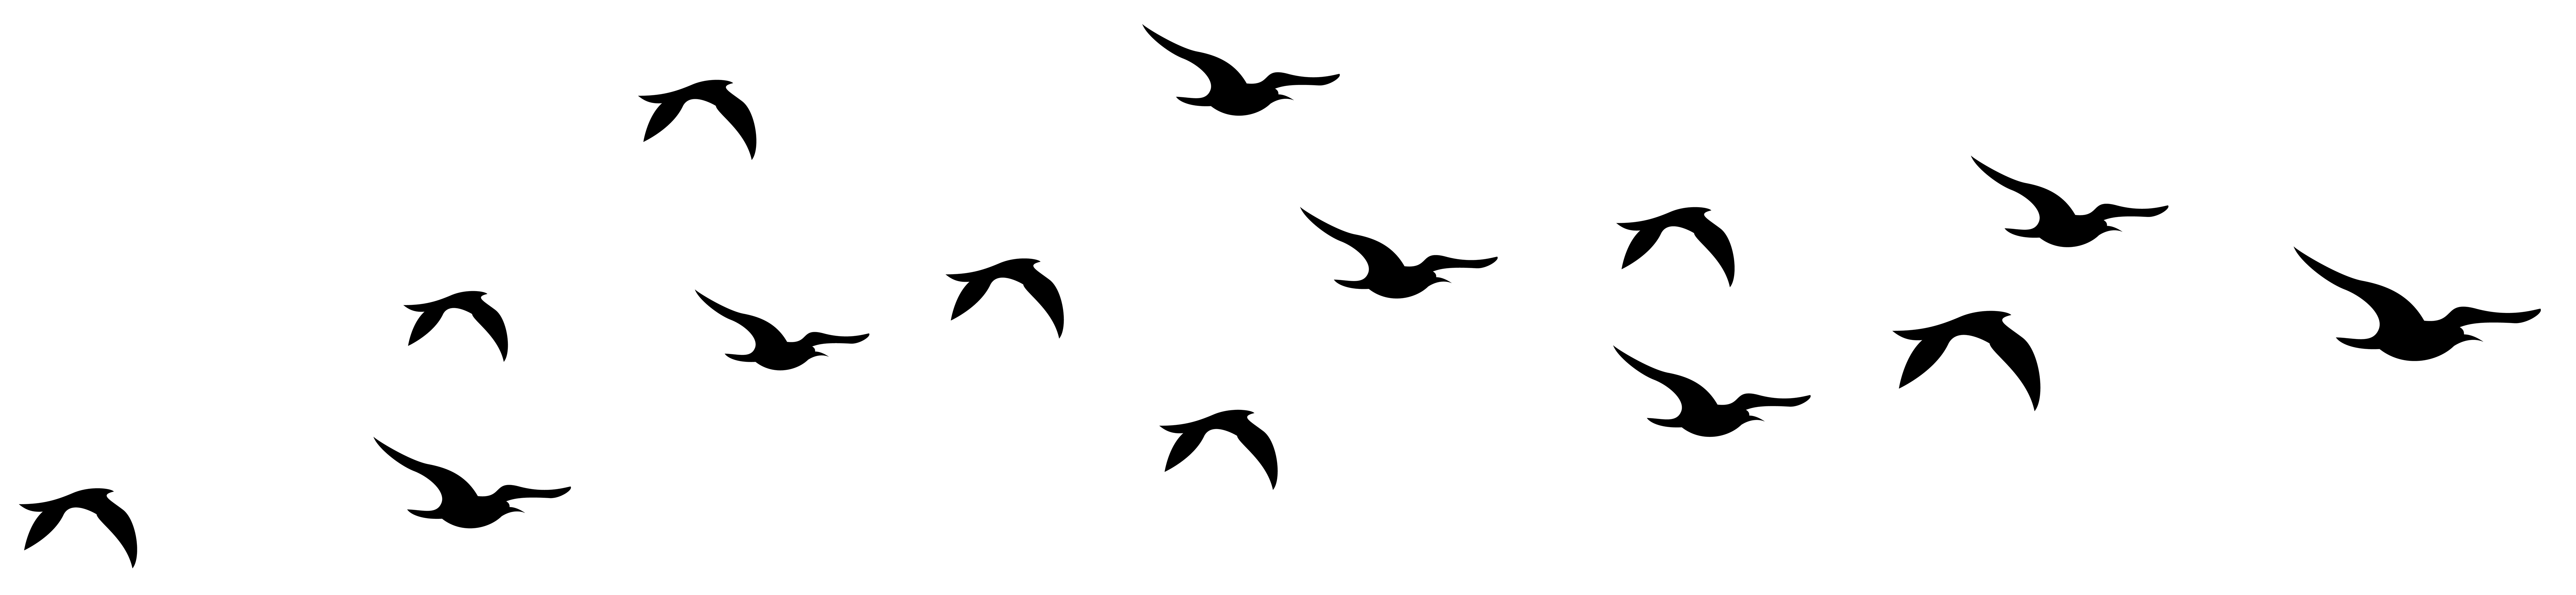 Birds transparent background. Bird clipart free download